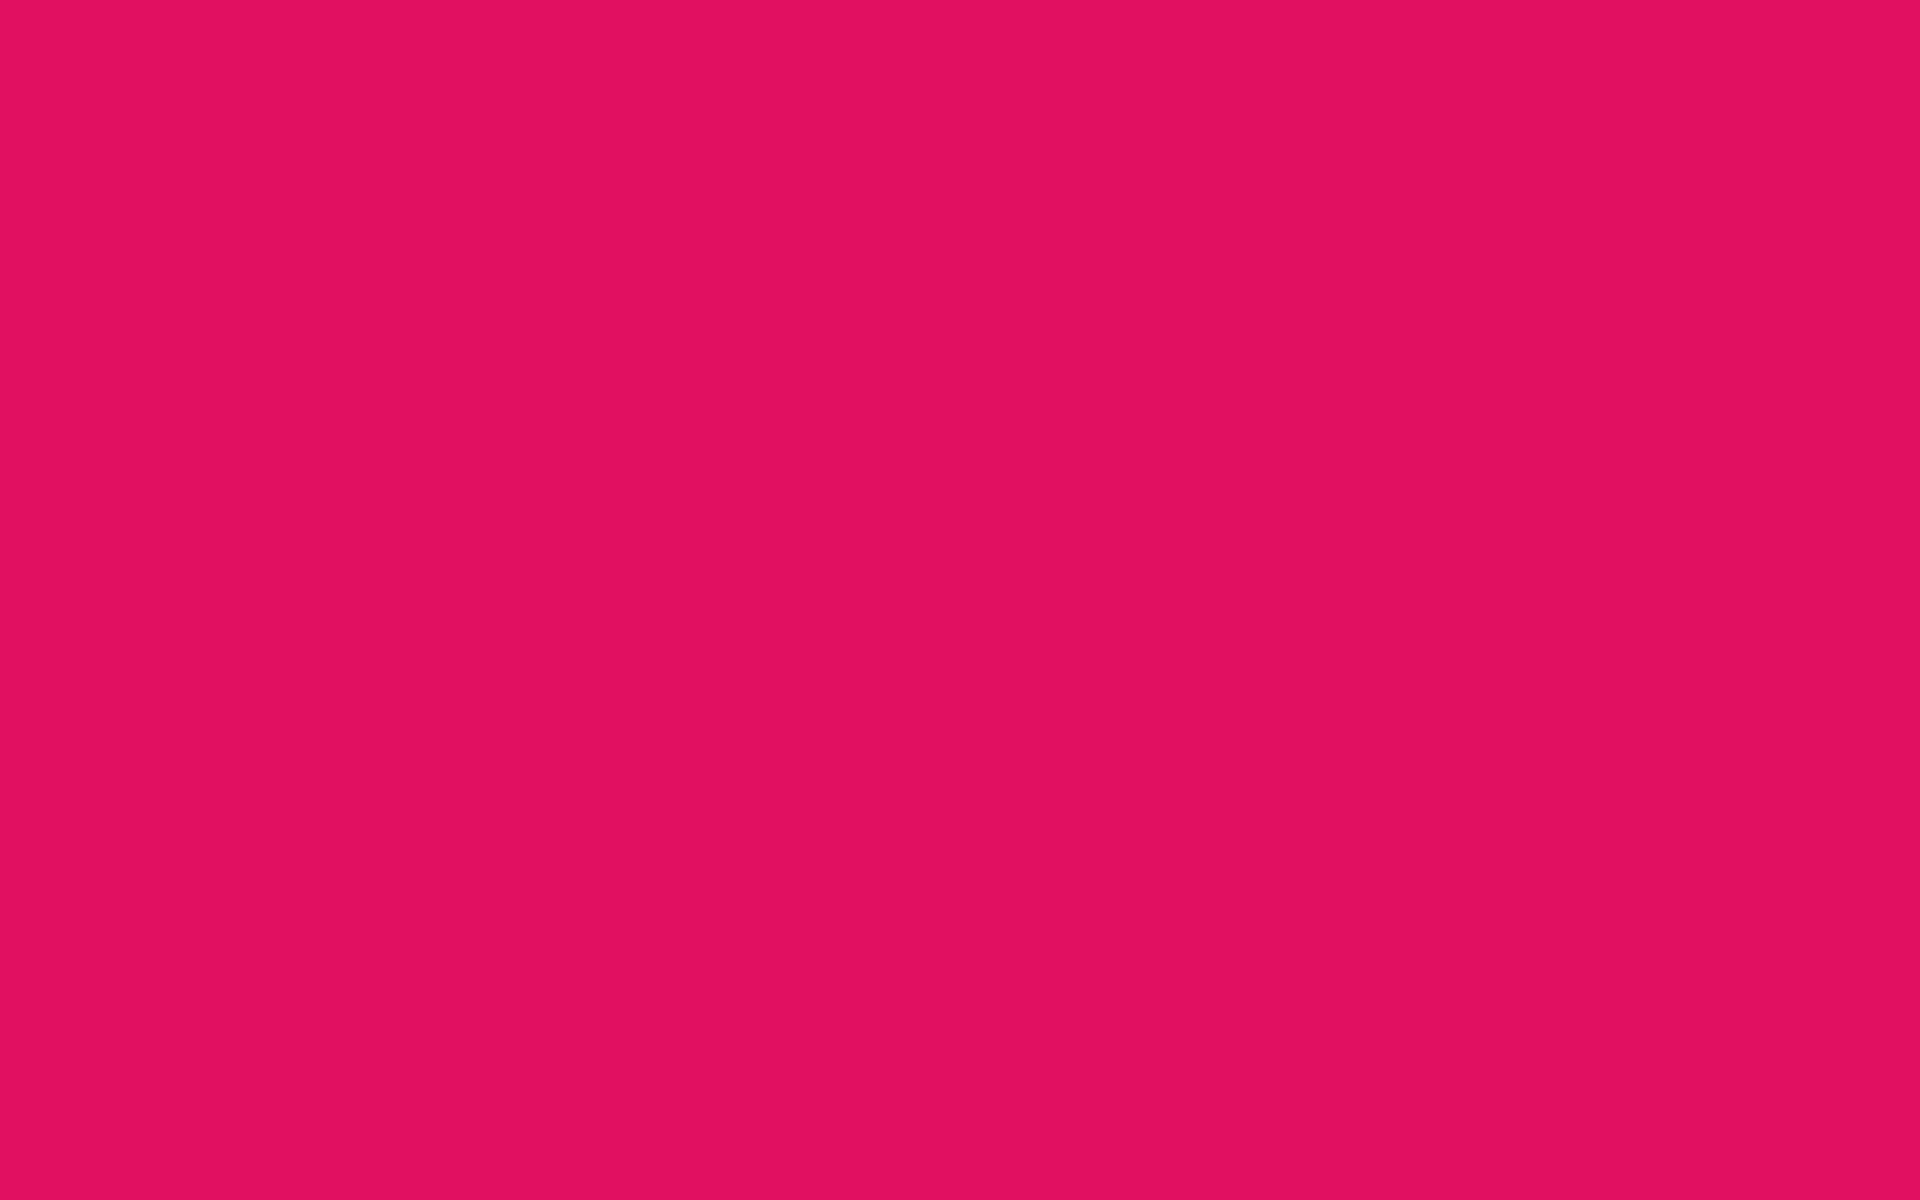 1920x1200 Ruby Solid Color Background